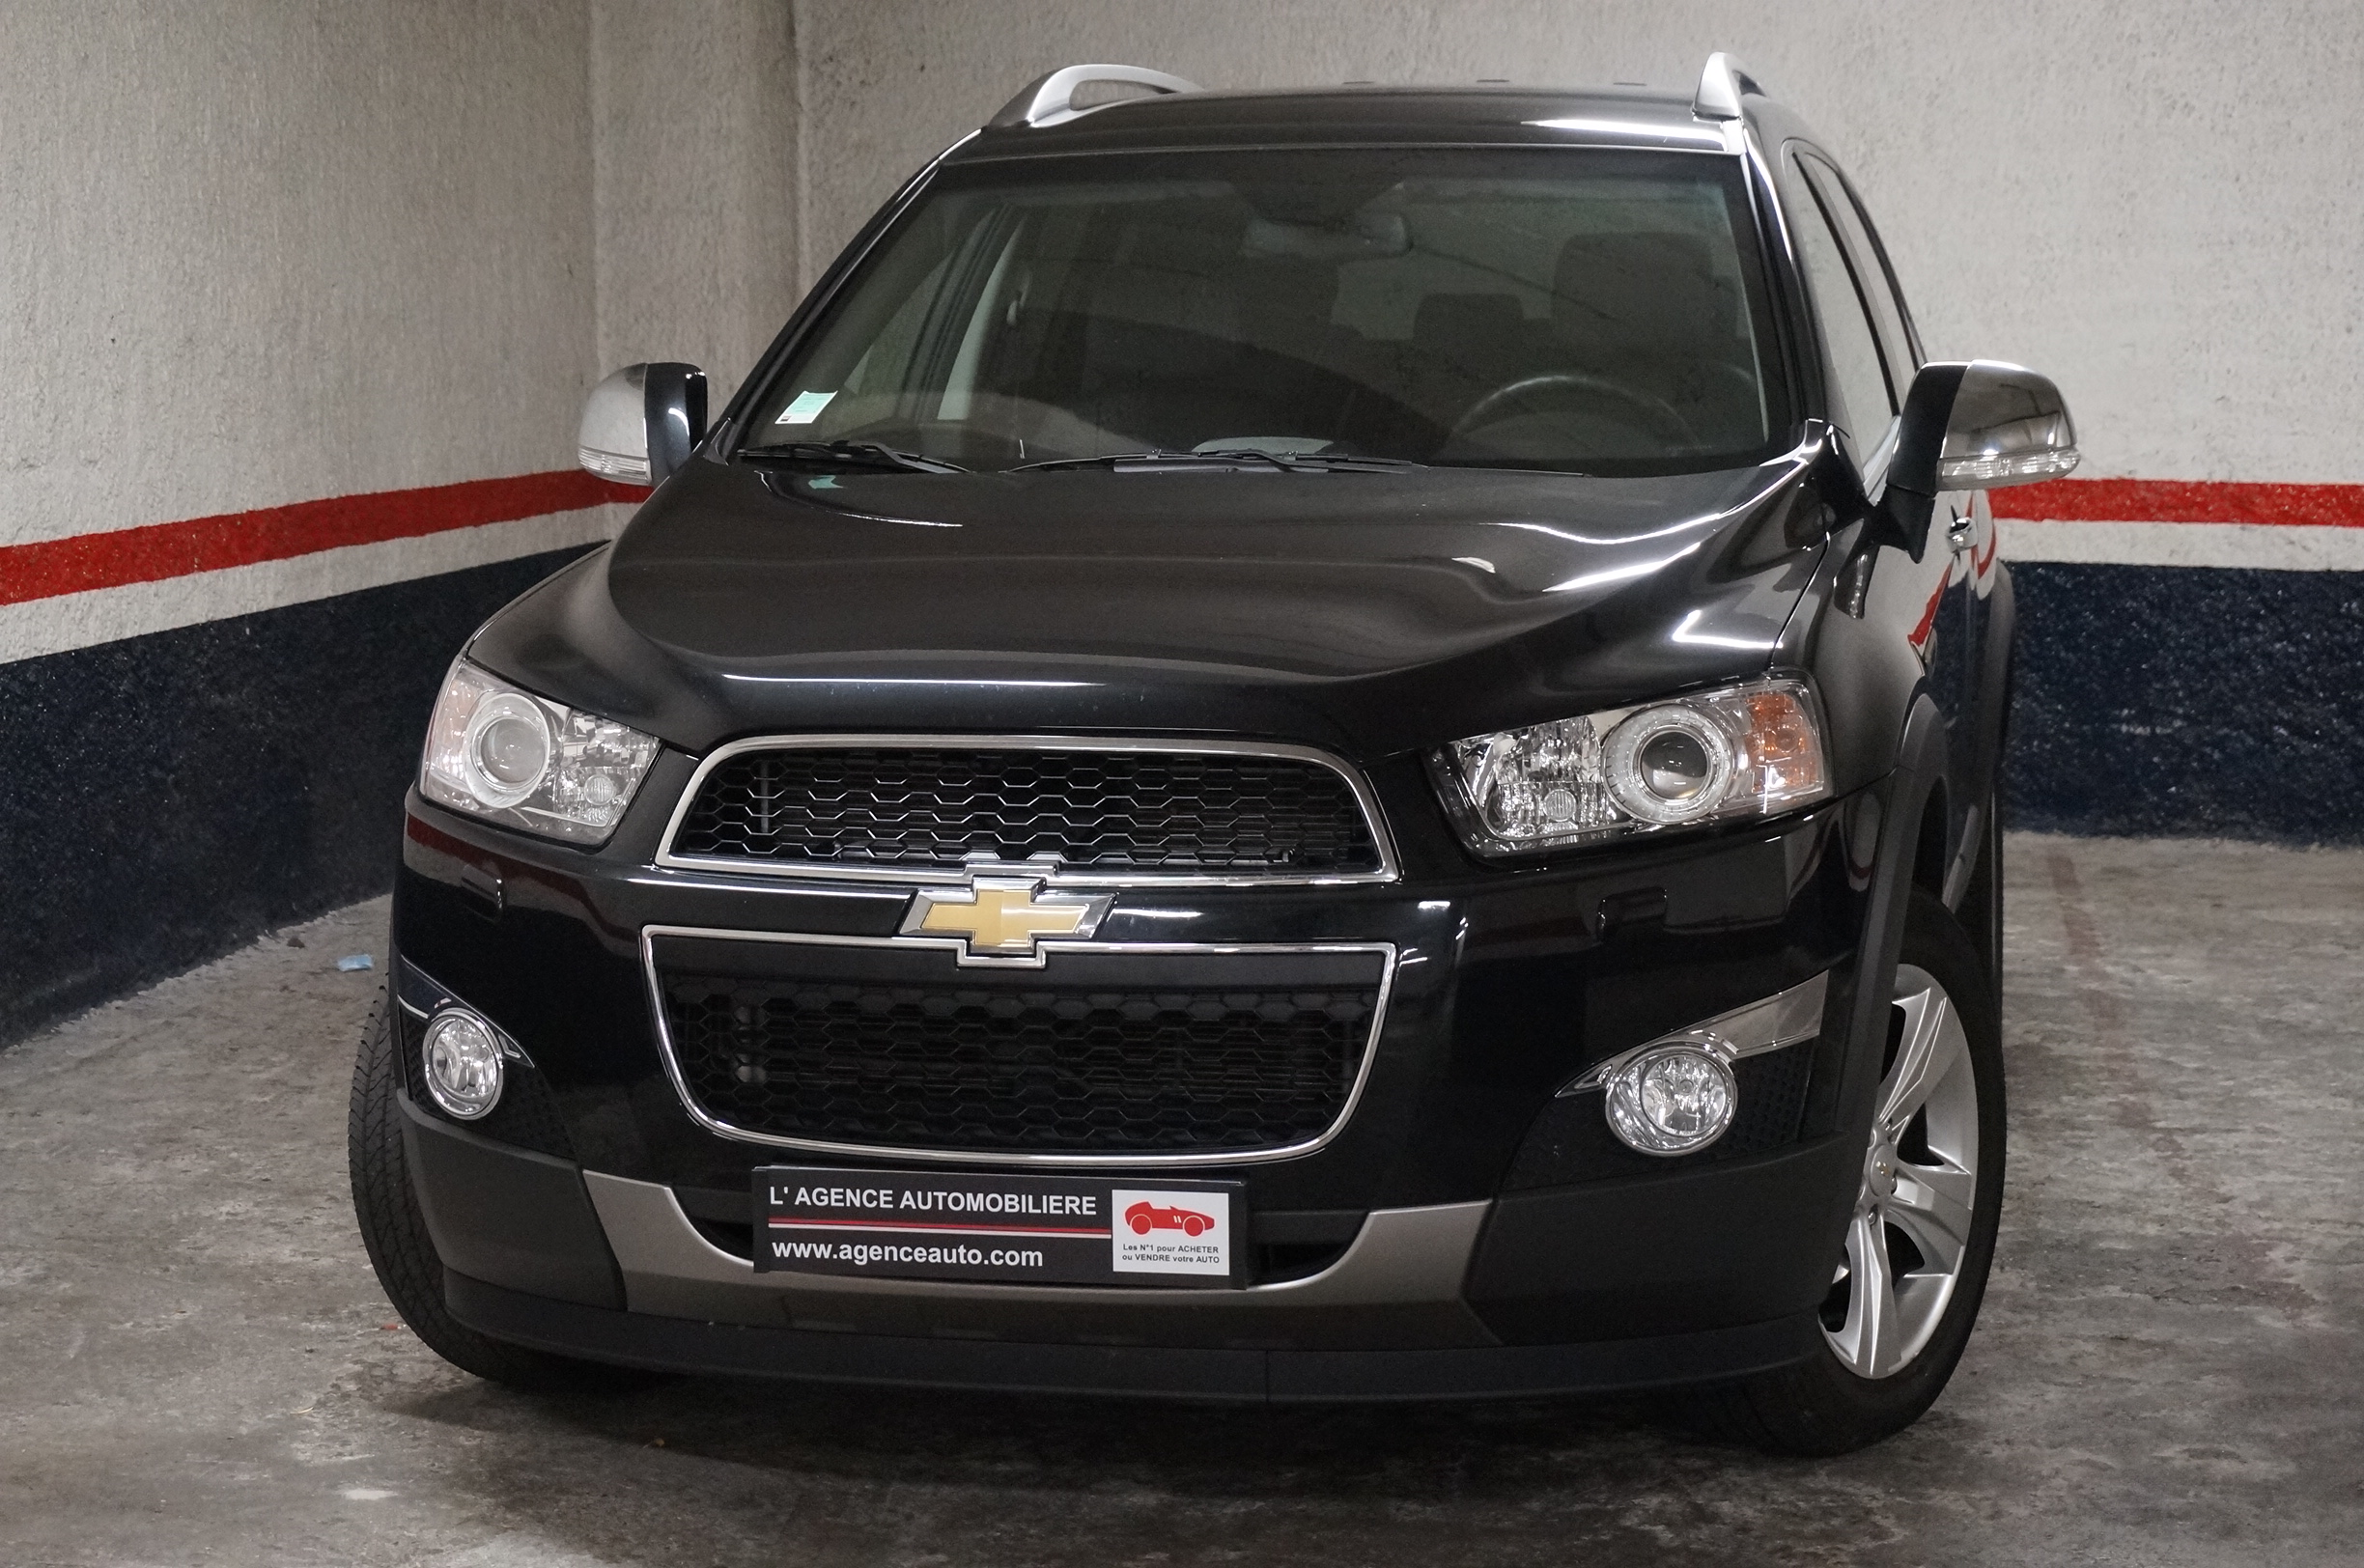 chevrolet captiva 2 2vcdi 163 lt s s 7 places occasion. Black Bedroom Furniture Sets. Home Design Ideas